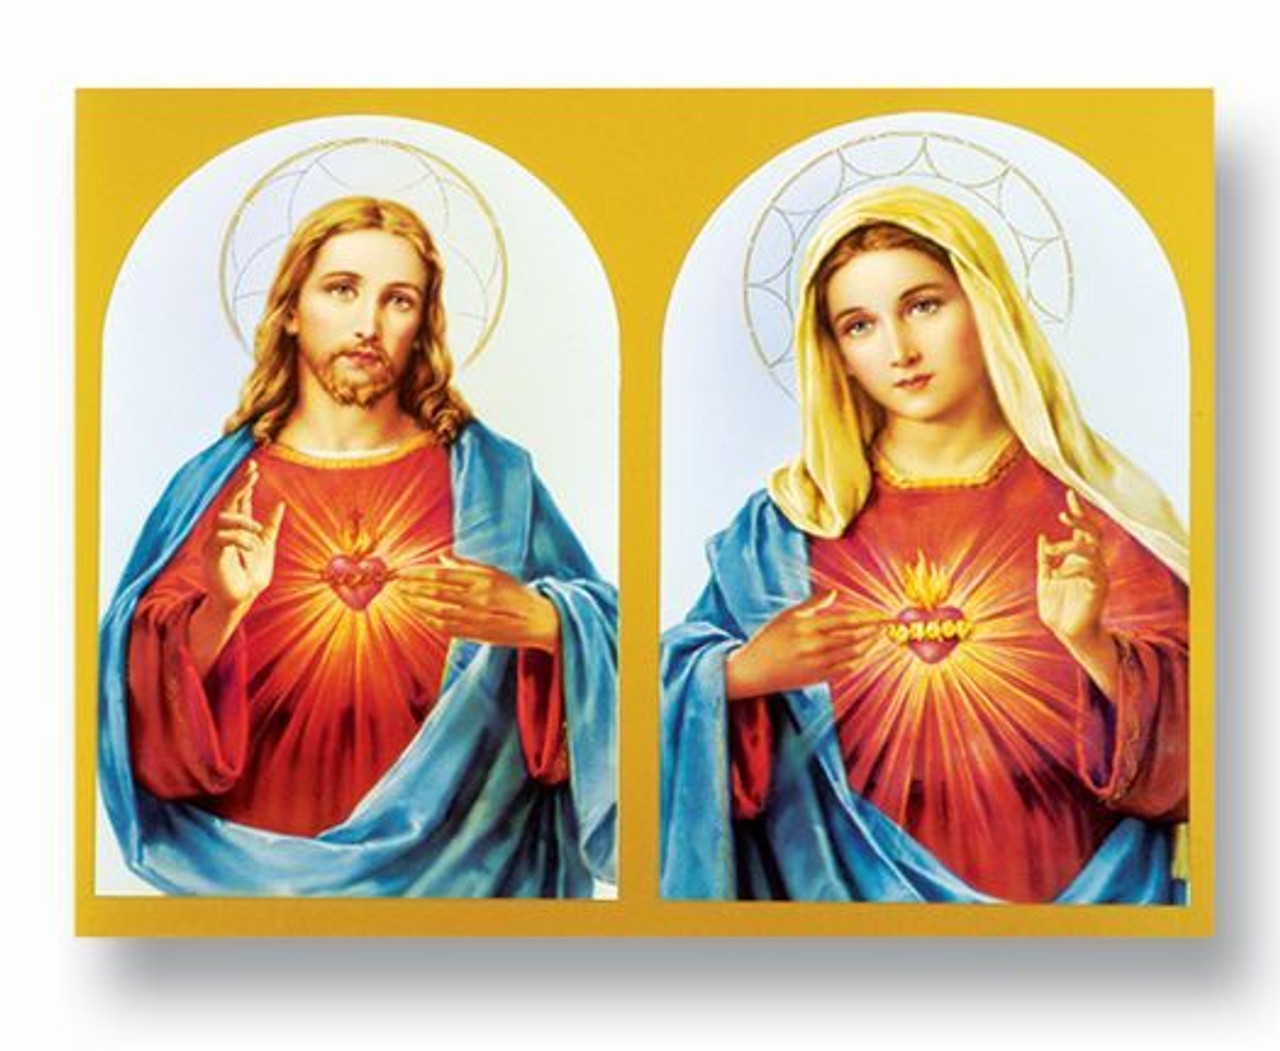 Sacred Heart of Jesus and Immaculate heart of mary poster measures 19 by 27 inches 192 191  53631.1553880637